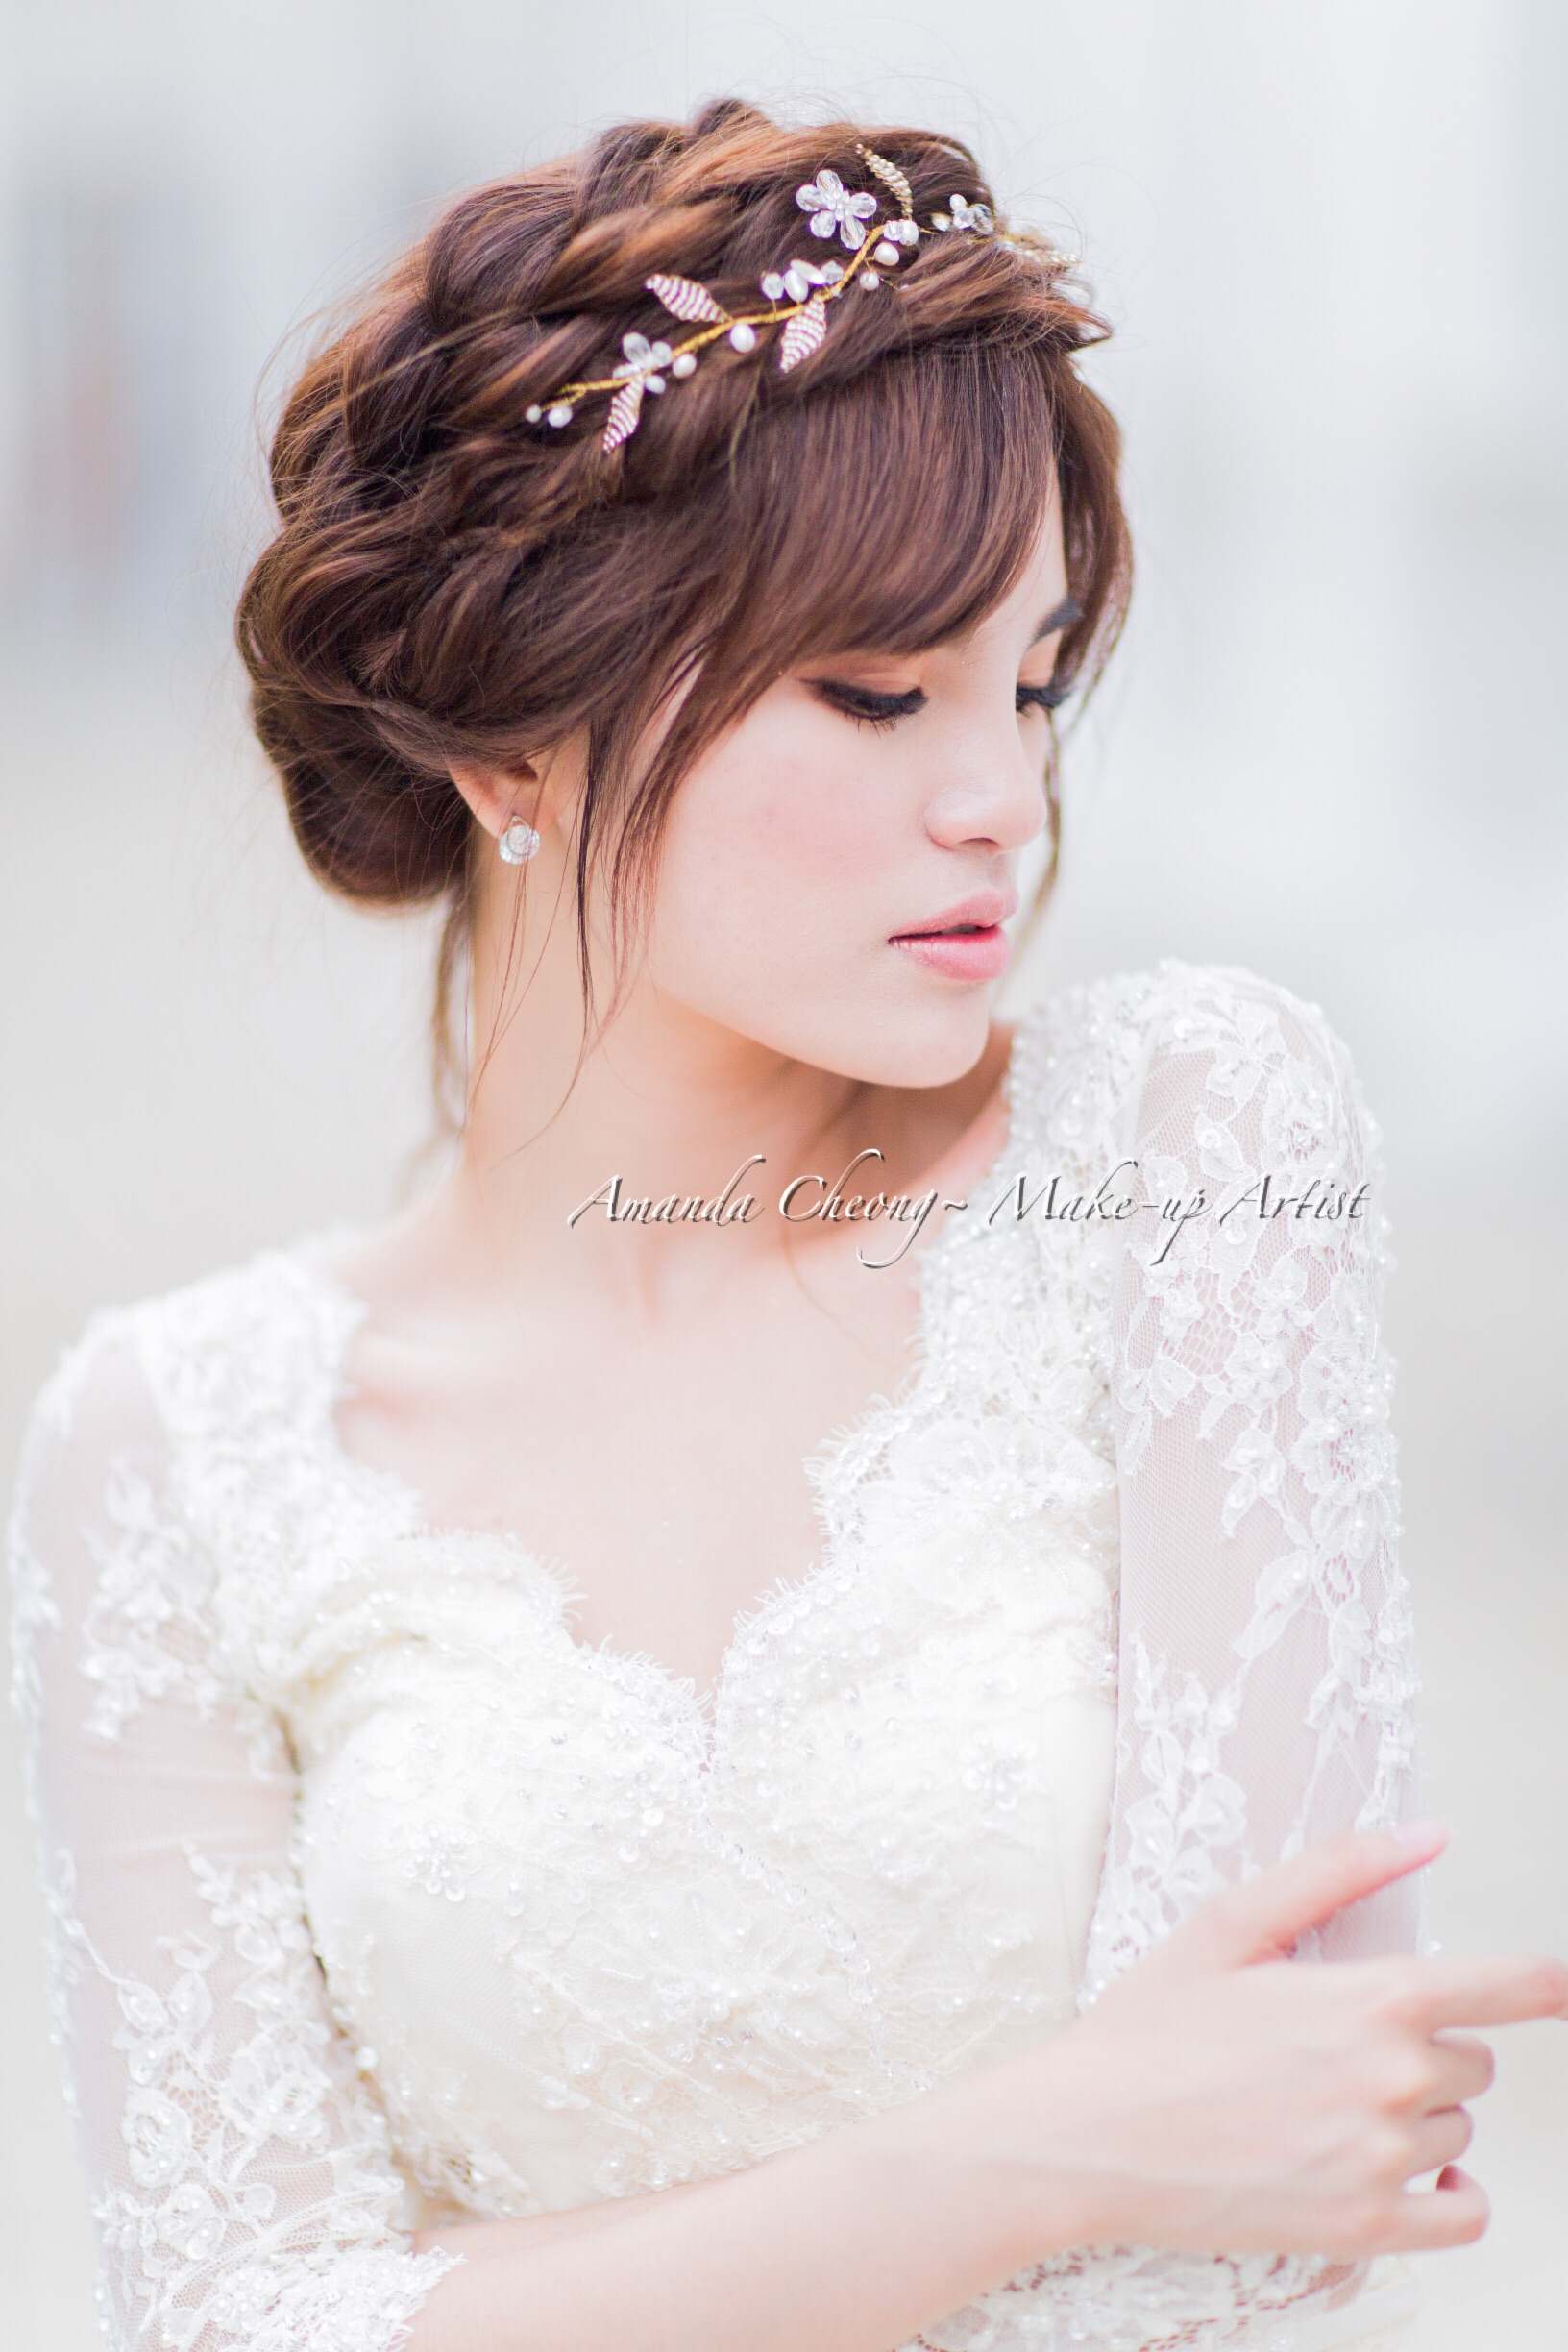 Pre Wedding Make up and hairstyle by Amanda Cheong~Make-up Artist ...